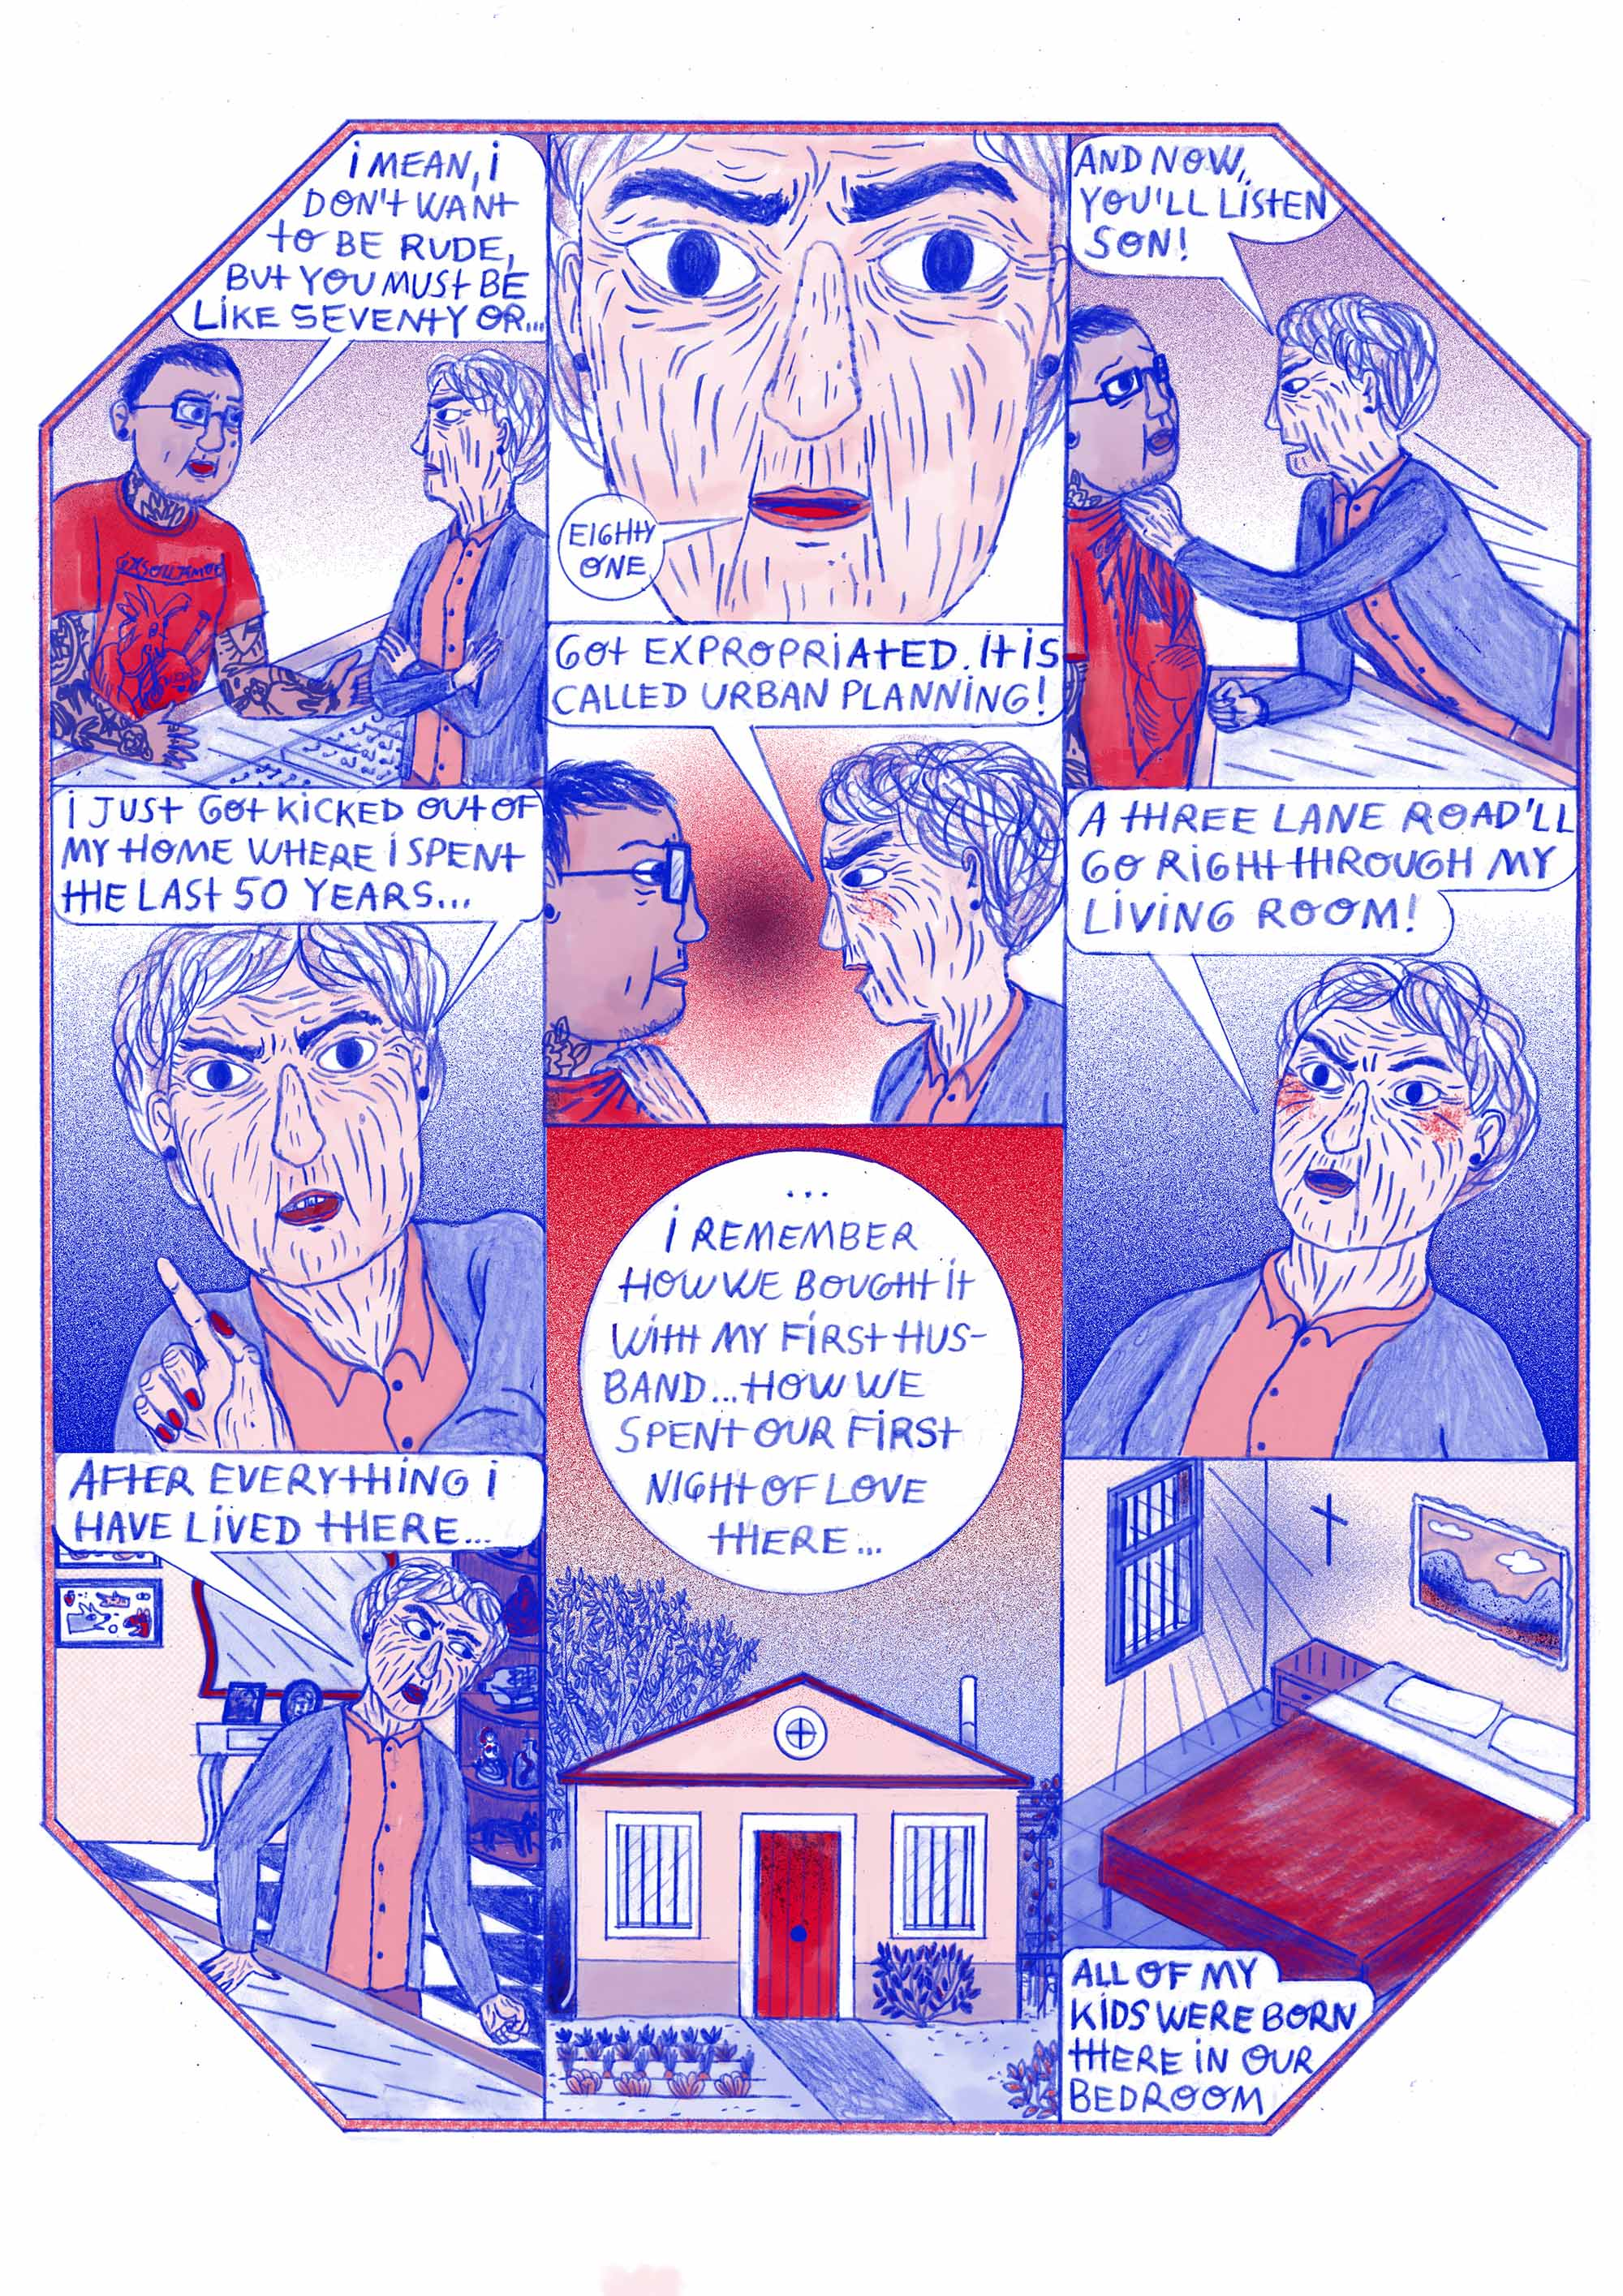 Old Skin Today S Comic By Marlene Krause Vice